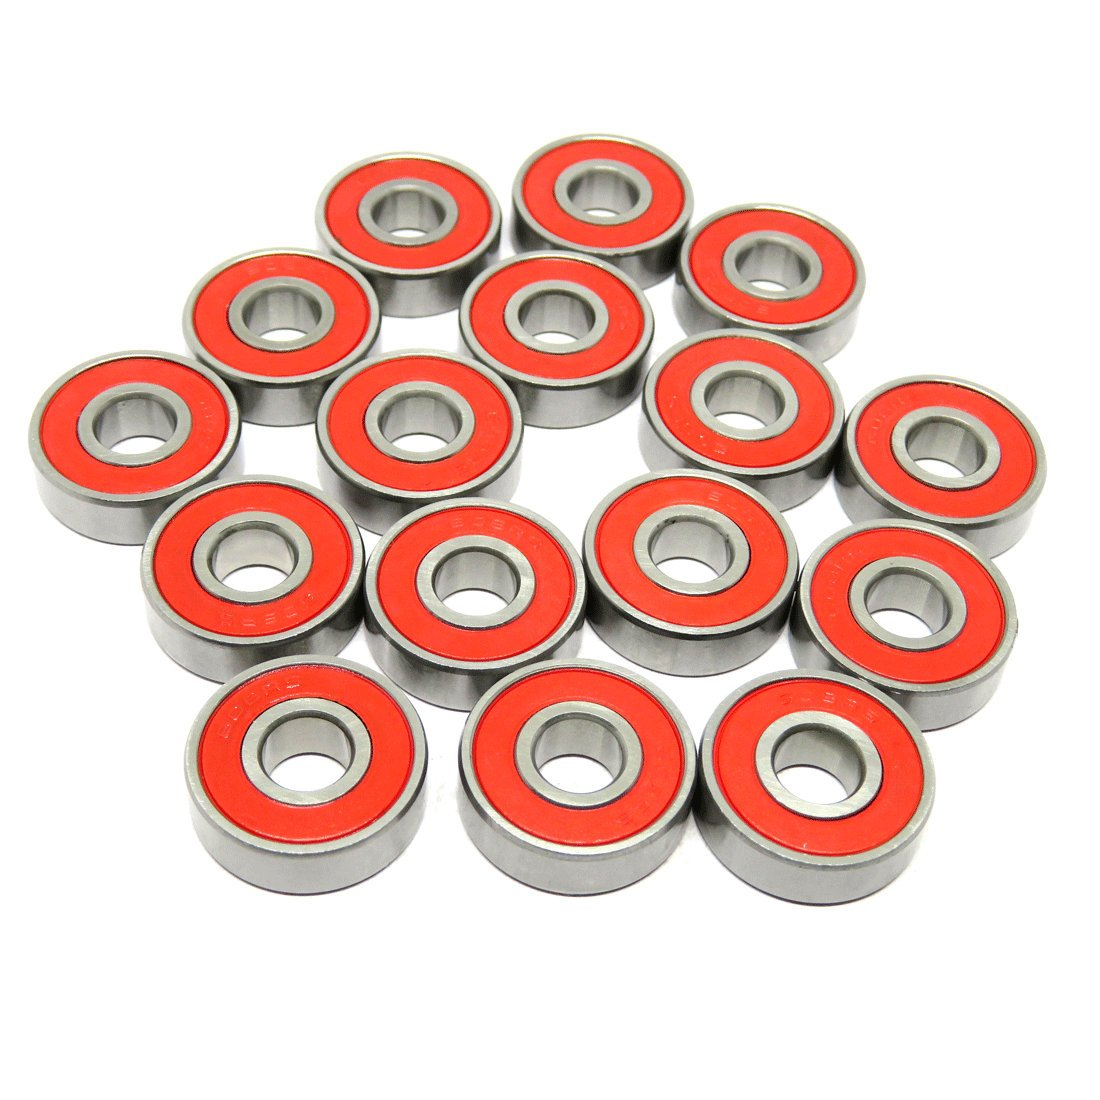 Zoty 608RS Skate Bearing 608-2RS ABEC-7 Longboard Bearings Inline Skate Ball Bearing 8x22x7mm Pack of 8 pcs